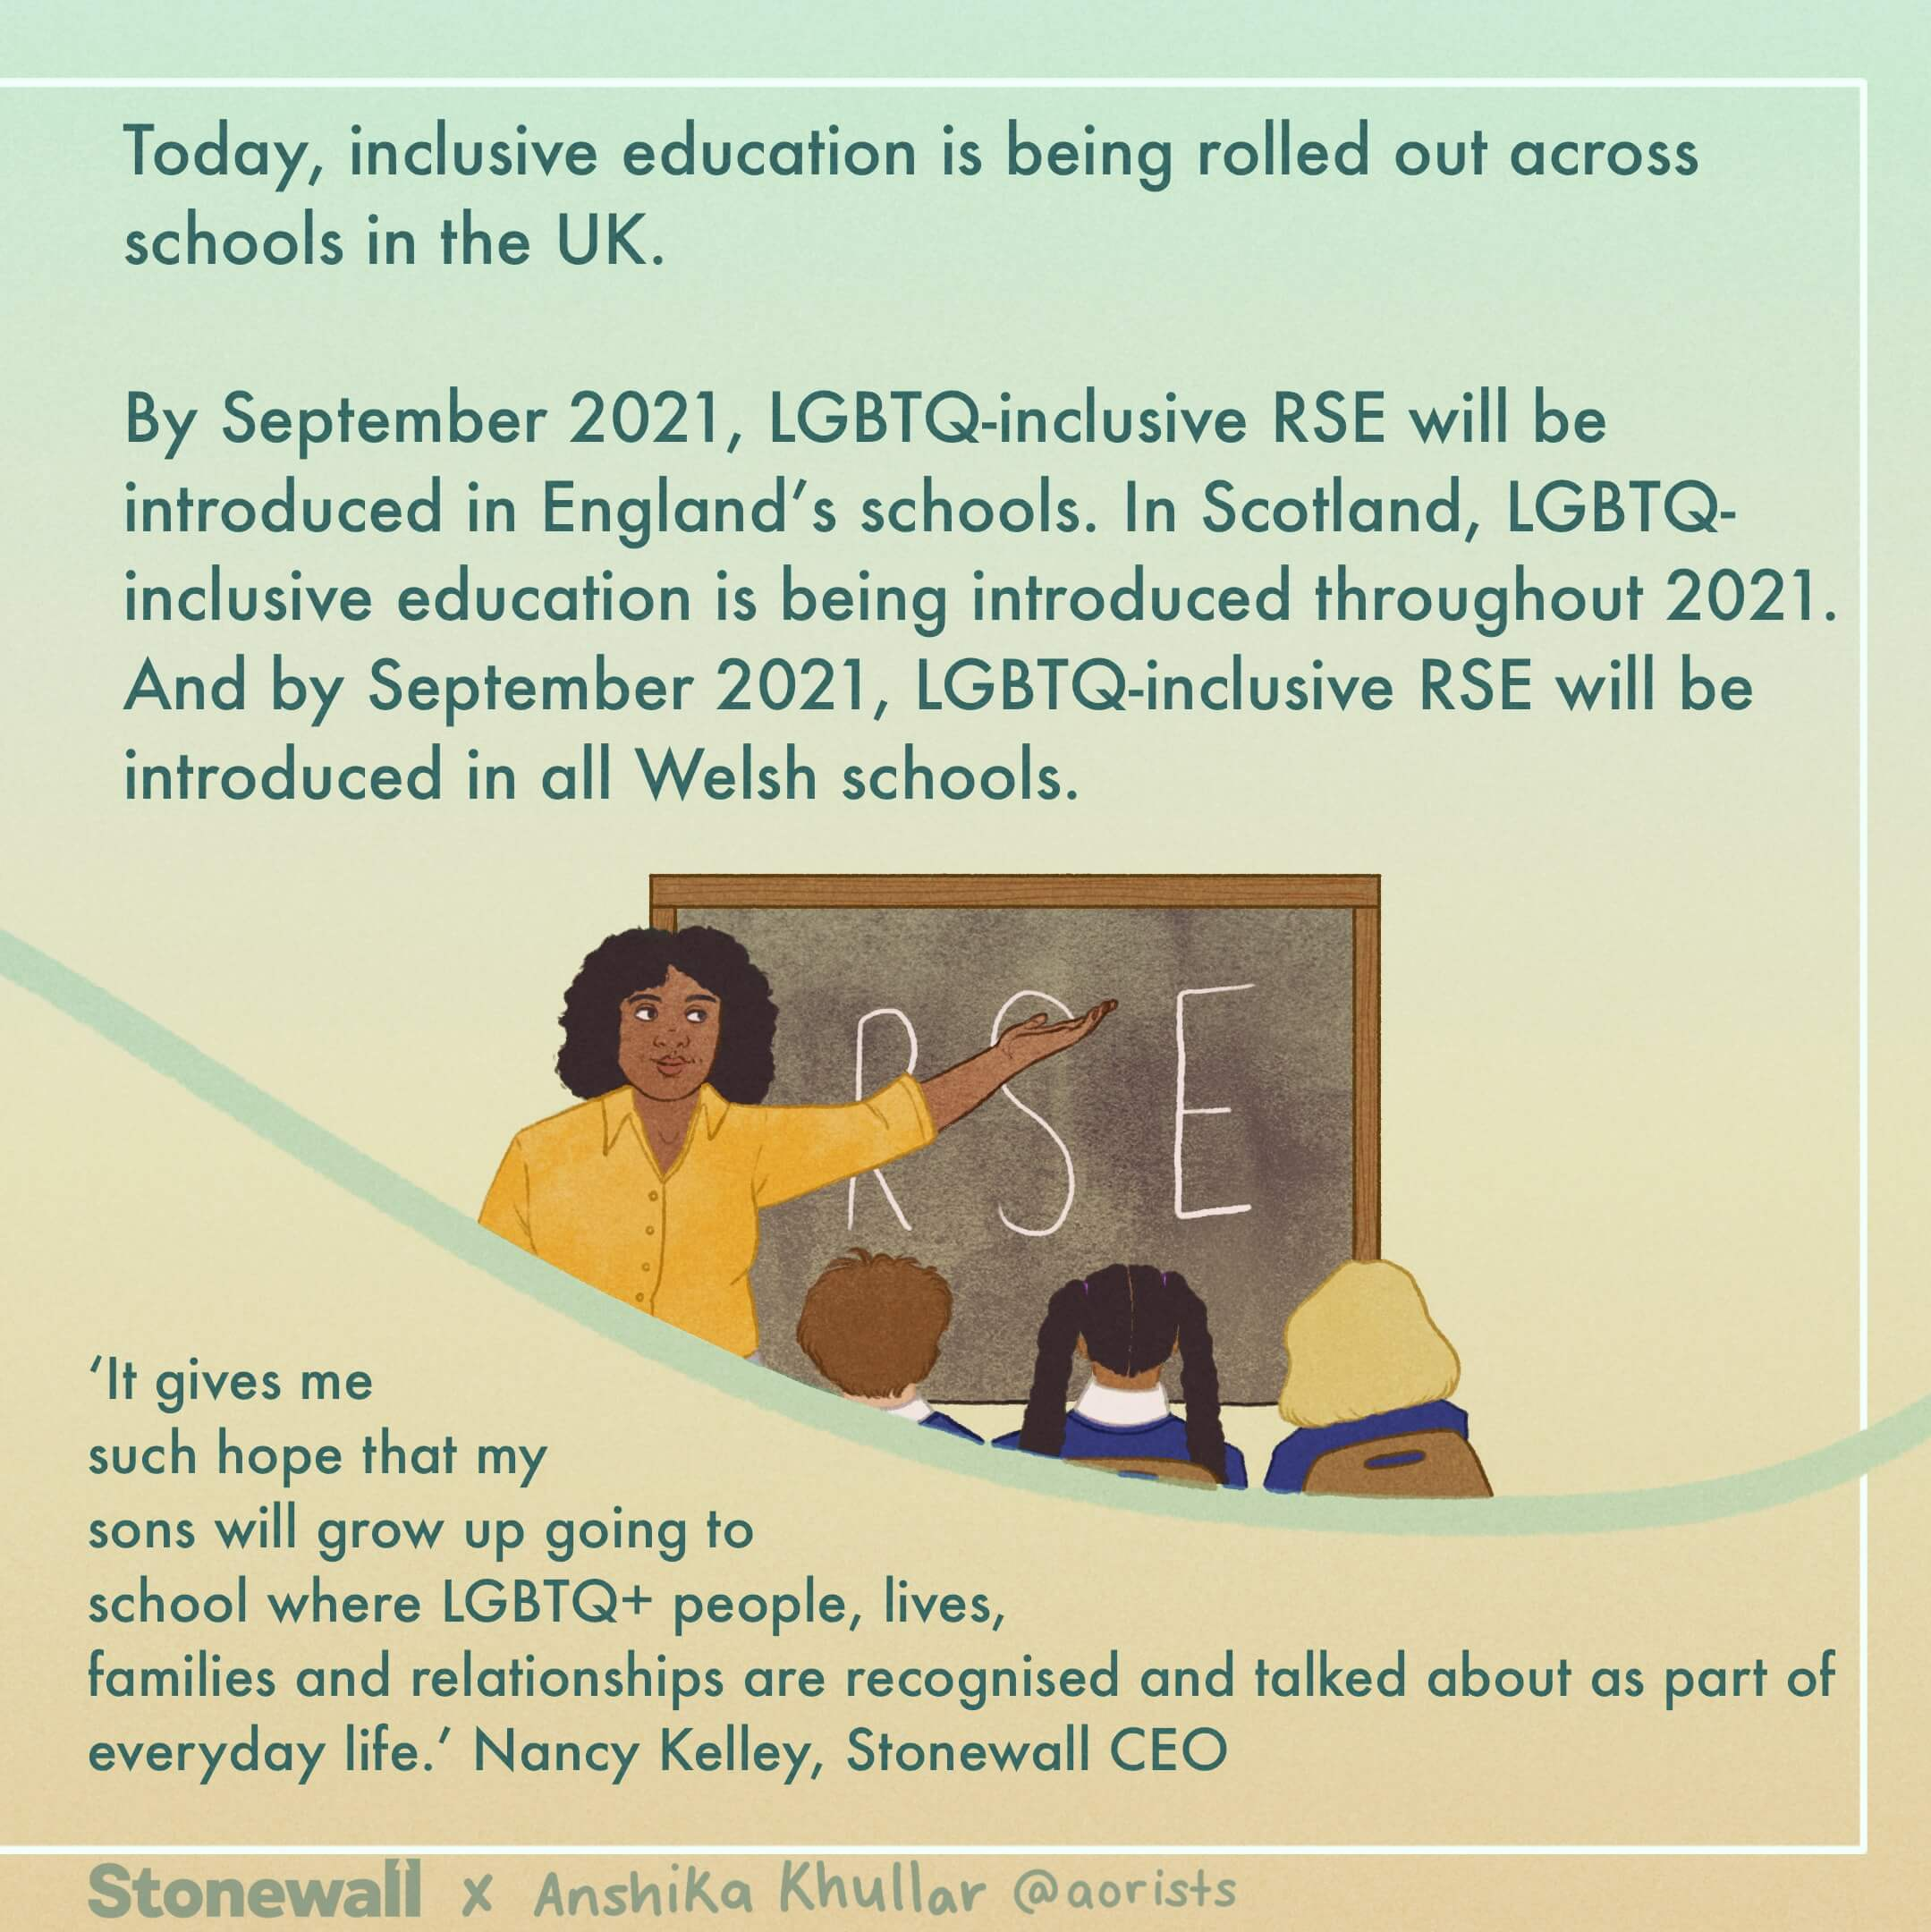 Today, inclusive education is being rolled out across schools in the UK. By September 2021, LGBTQ-inclusive RSE will be introduced in England's schools. In Scotland, LGBTQ-inclusive education is being introduced throughout 2021. And by September 2021, LGBTQ-inclusive RSE will be introduced in all Welsh schools. 'It gives me such hope that my sons will grow up going to school where LGBTQ+ people, lives, families and relationships are recognised and talked about as part of everyday life.' Nancy Kelley, Stonewall CEO. Mini illustration of: a classroom with a teacher teaching inclusive education to students